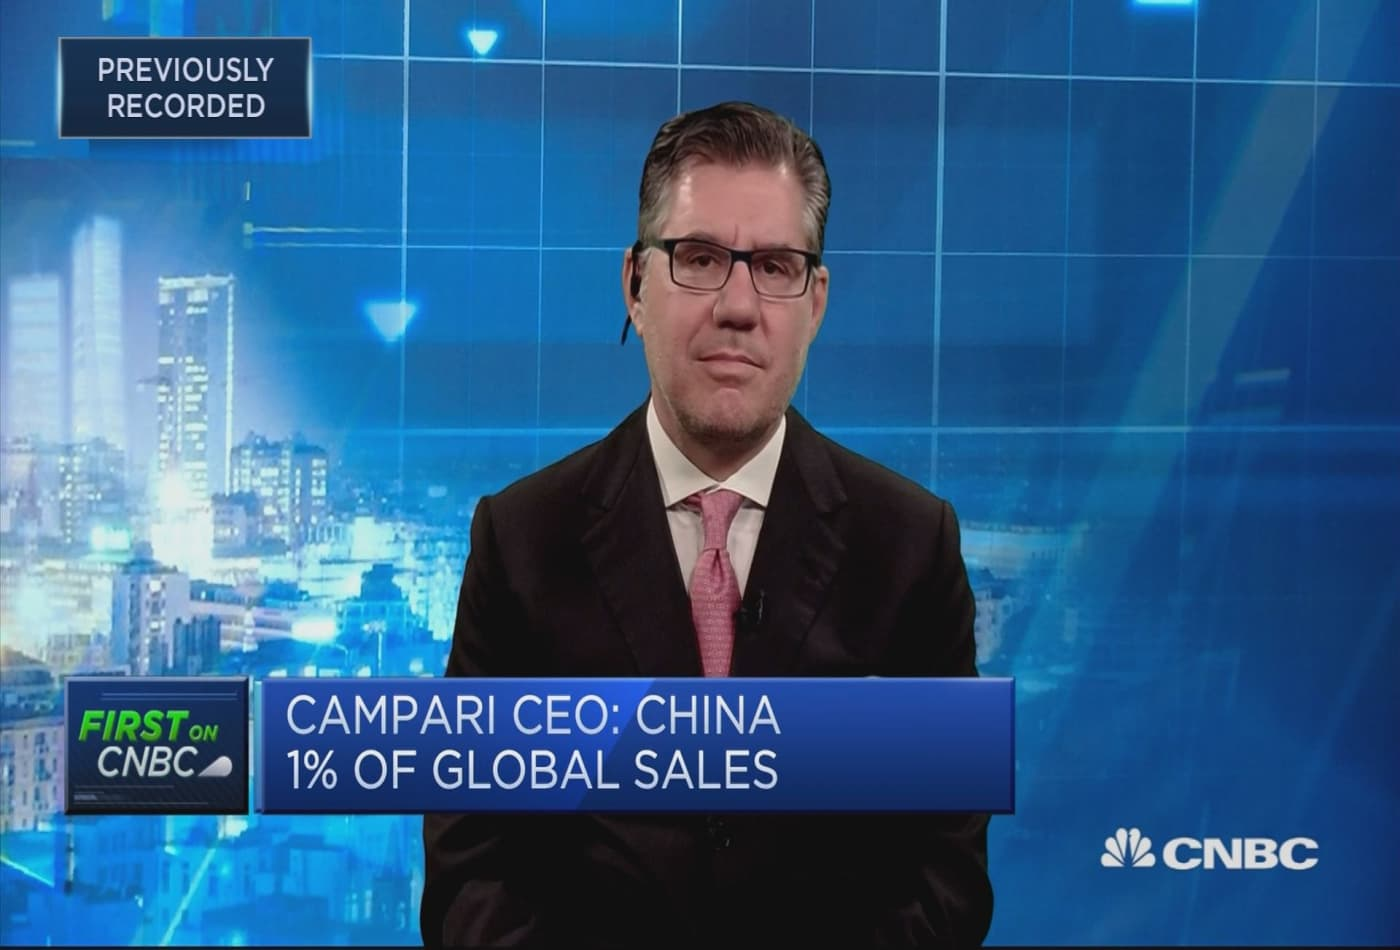 Investing significantly into fundamentals of our business, Campari CEO says